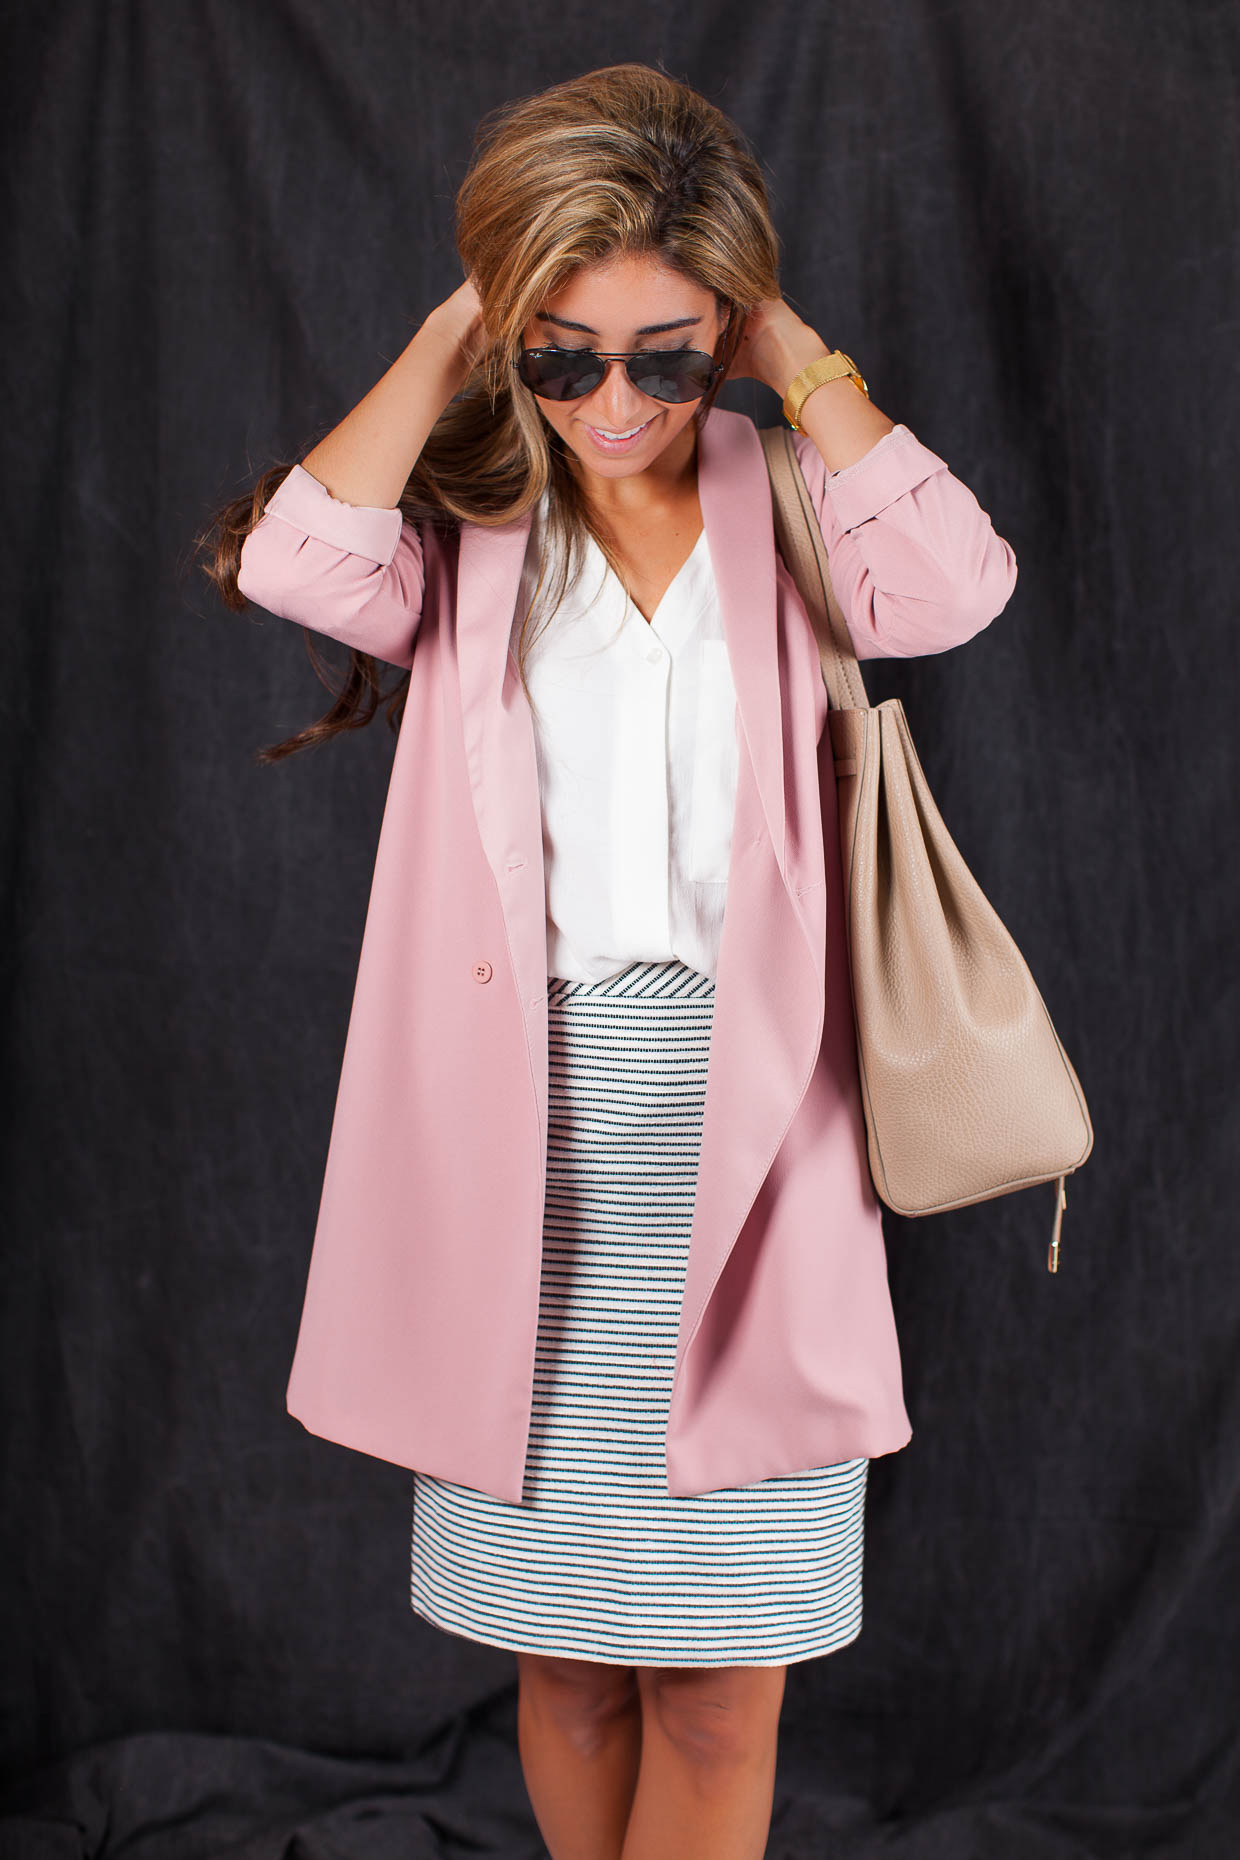 Fashion Blogger The Darling Detail is wearing a Topshop Slouchy Pocket Long Sleeve Blouse, a Halogen Welt Pocket Pencil Skirt, a Topshop Slouch Longline Blazer, a Larsson & Jennings 'Lugano' Mesh Strap Watch, and is holding a BP. Faux Leather Drawstring Tote.